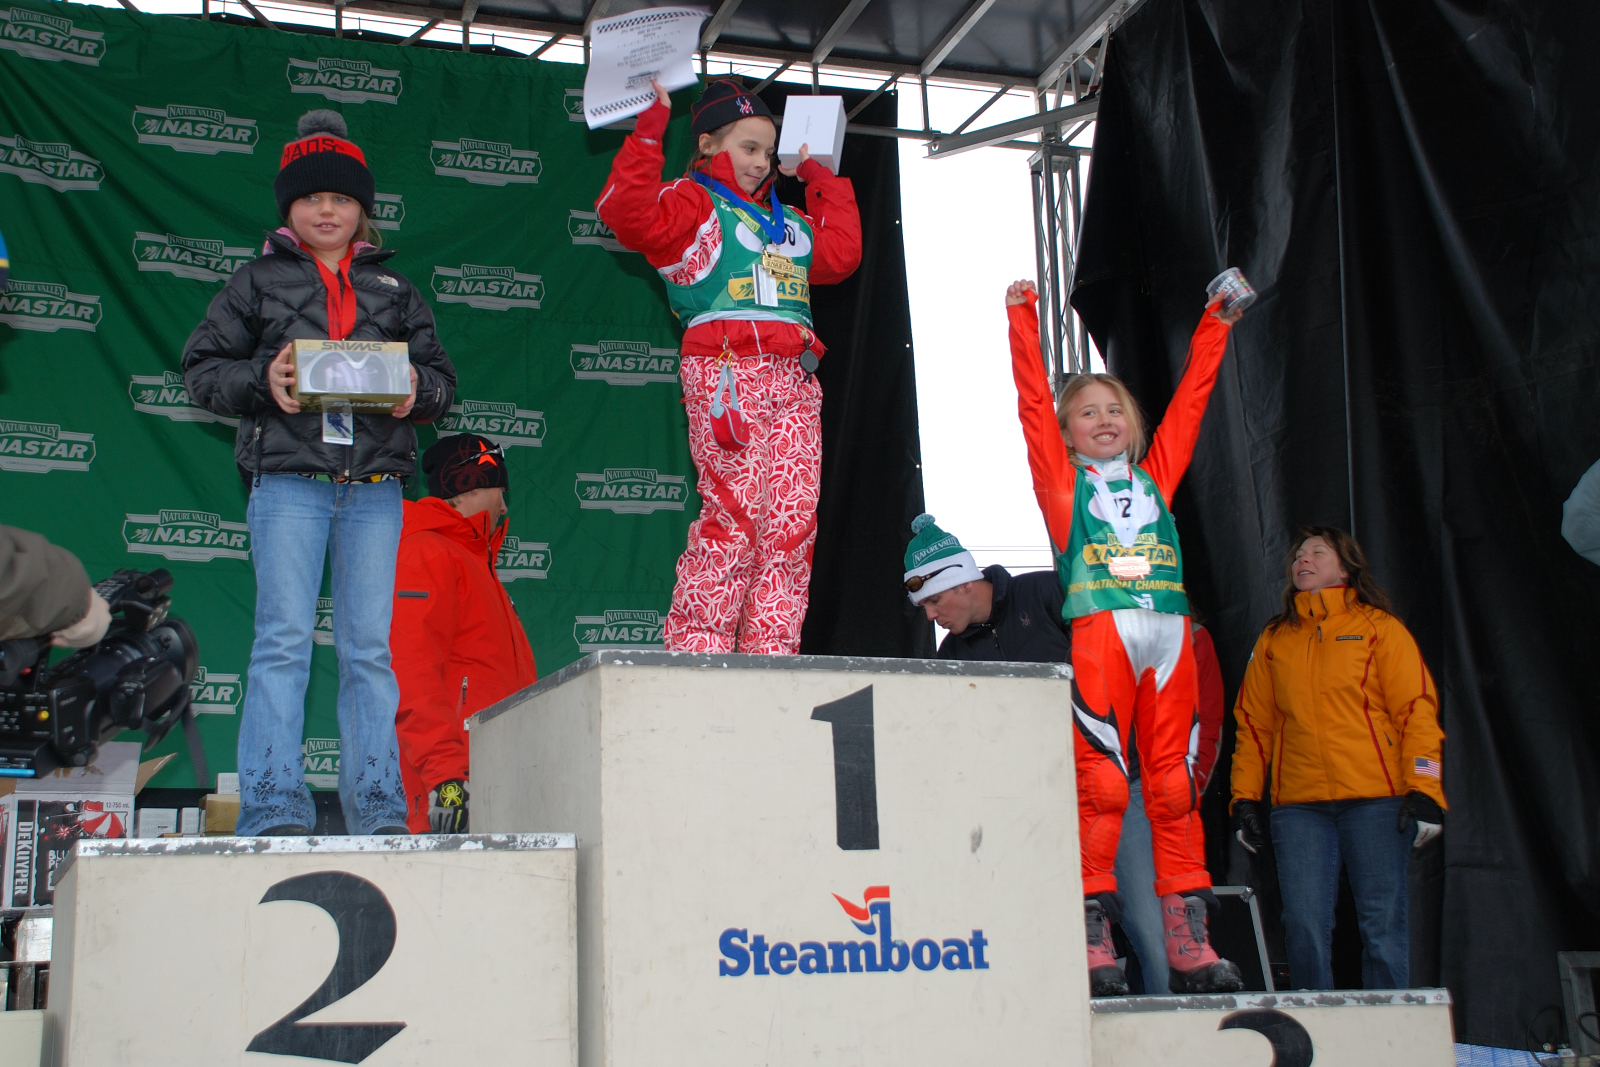 Ainsley Proffit stands on her first podium of her ski racing career. Little did she know that race would take her down a path towards joining the U.S. development team. Photo courtesy of Ainsley Proffit.